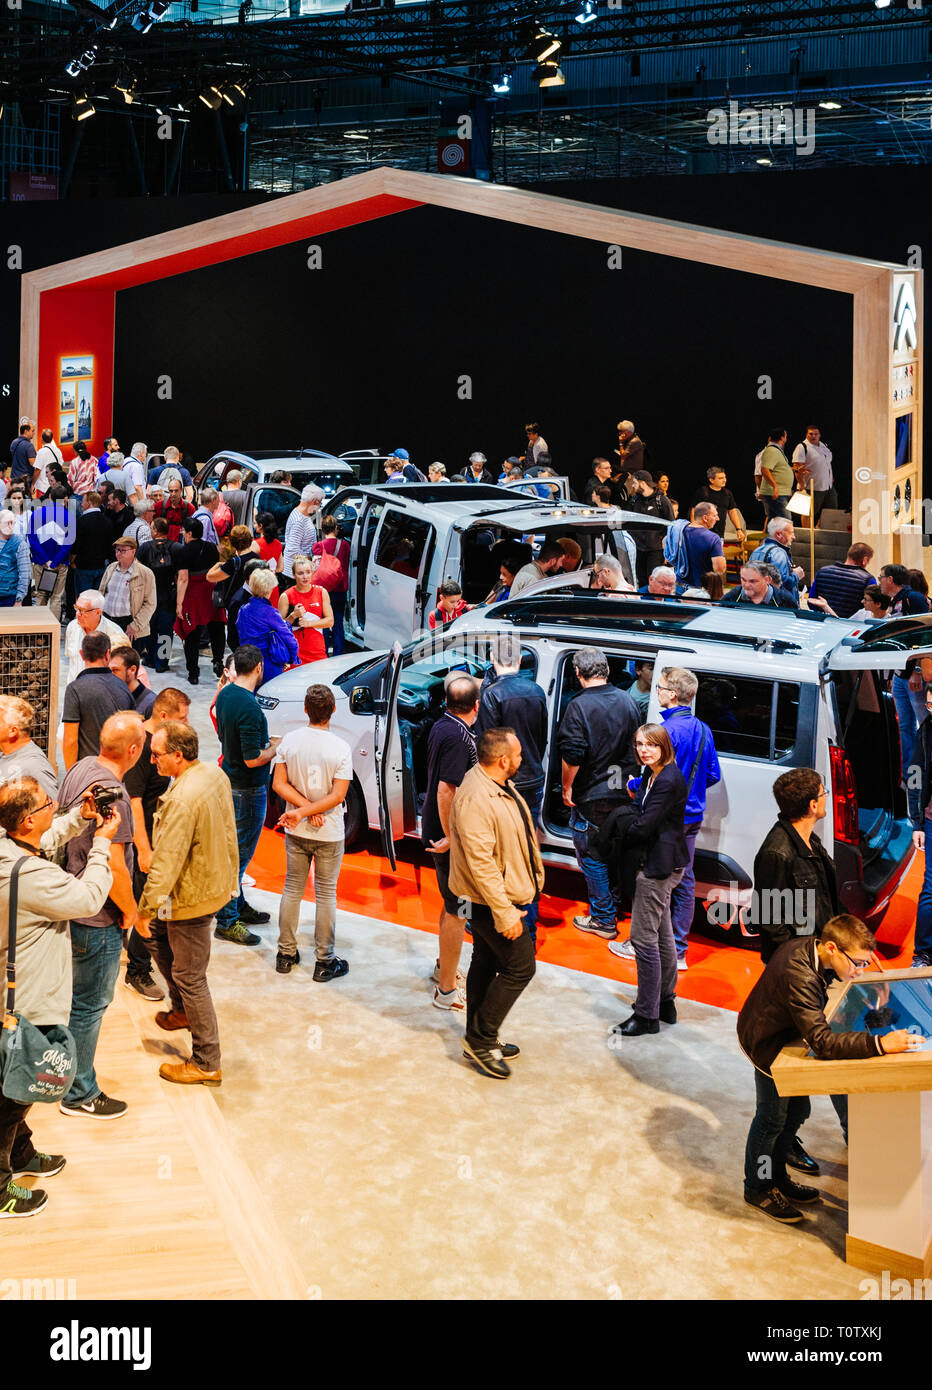 PARIS, FRANCE - OCT 4, 2018: Customers and curious people admiring the new Citroen van at International car exhibition Mondial Paris Motor Show, model produced by French car maker - Stock Image